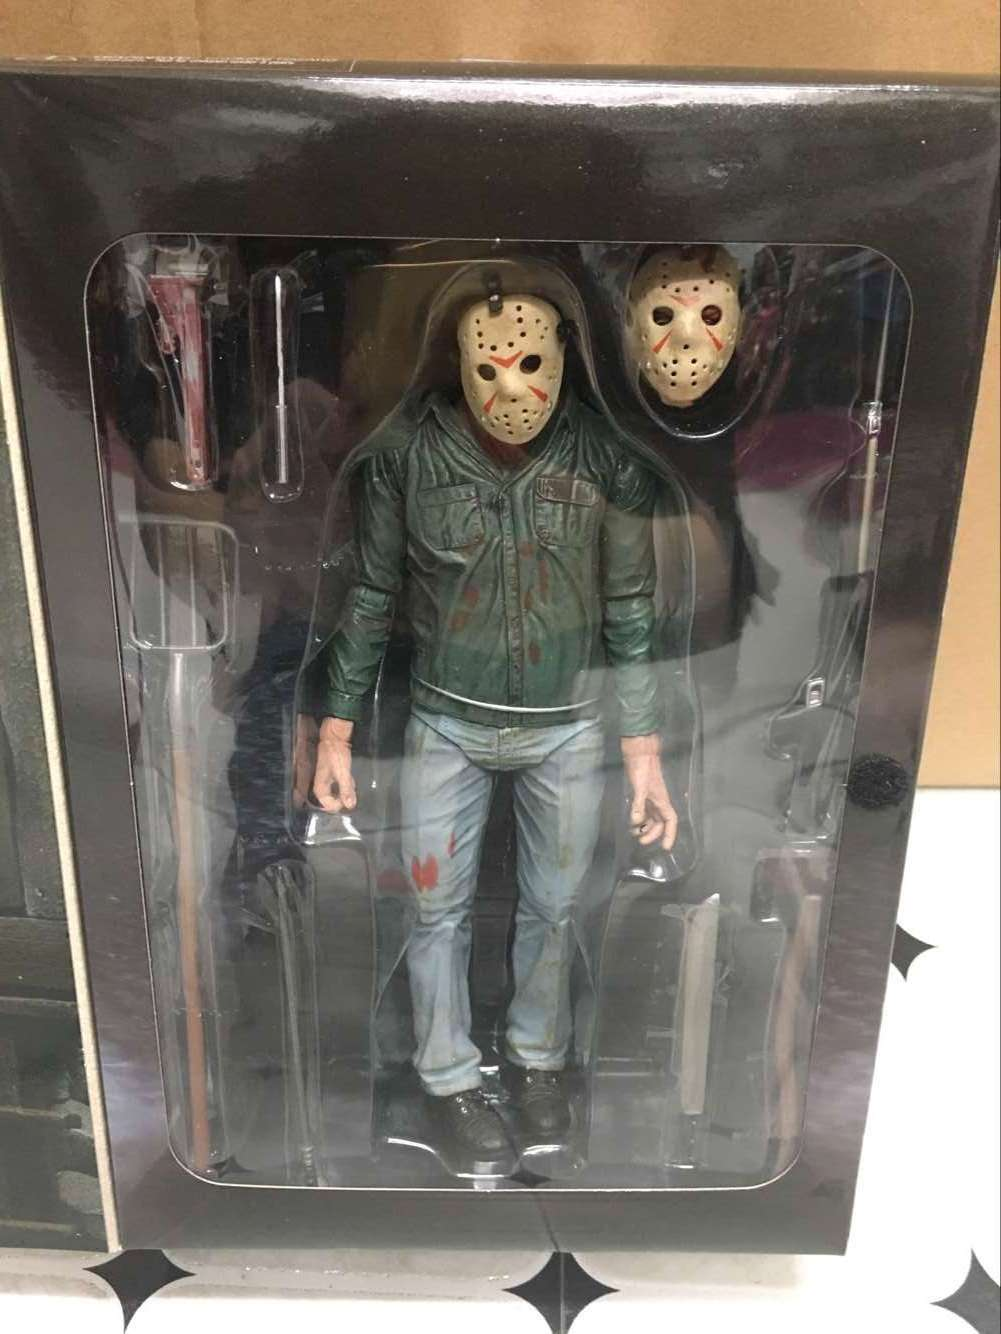 NECA A Nightmare on Elm Street 3 Freddy Krueger Friday the 13th Part 3 3D Jason Voorhees Action Figure PVC Collectible Model Toy